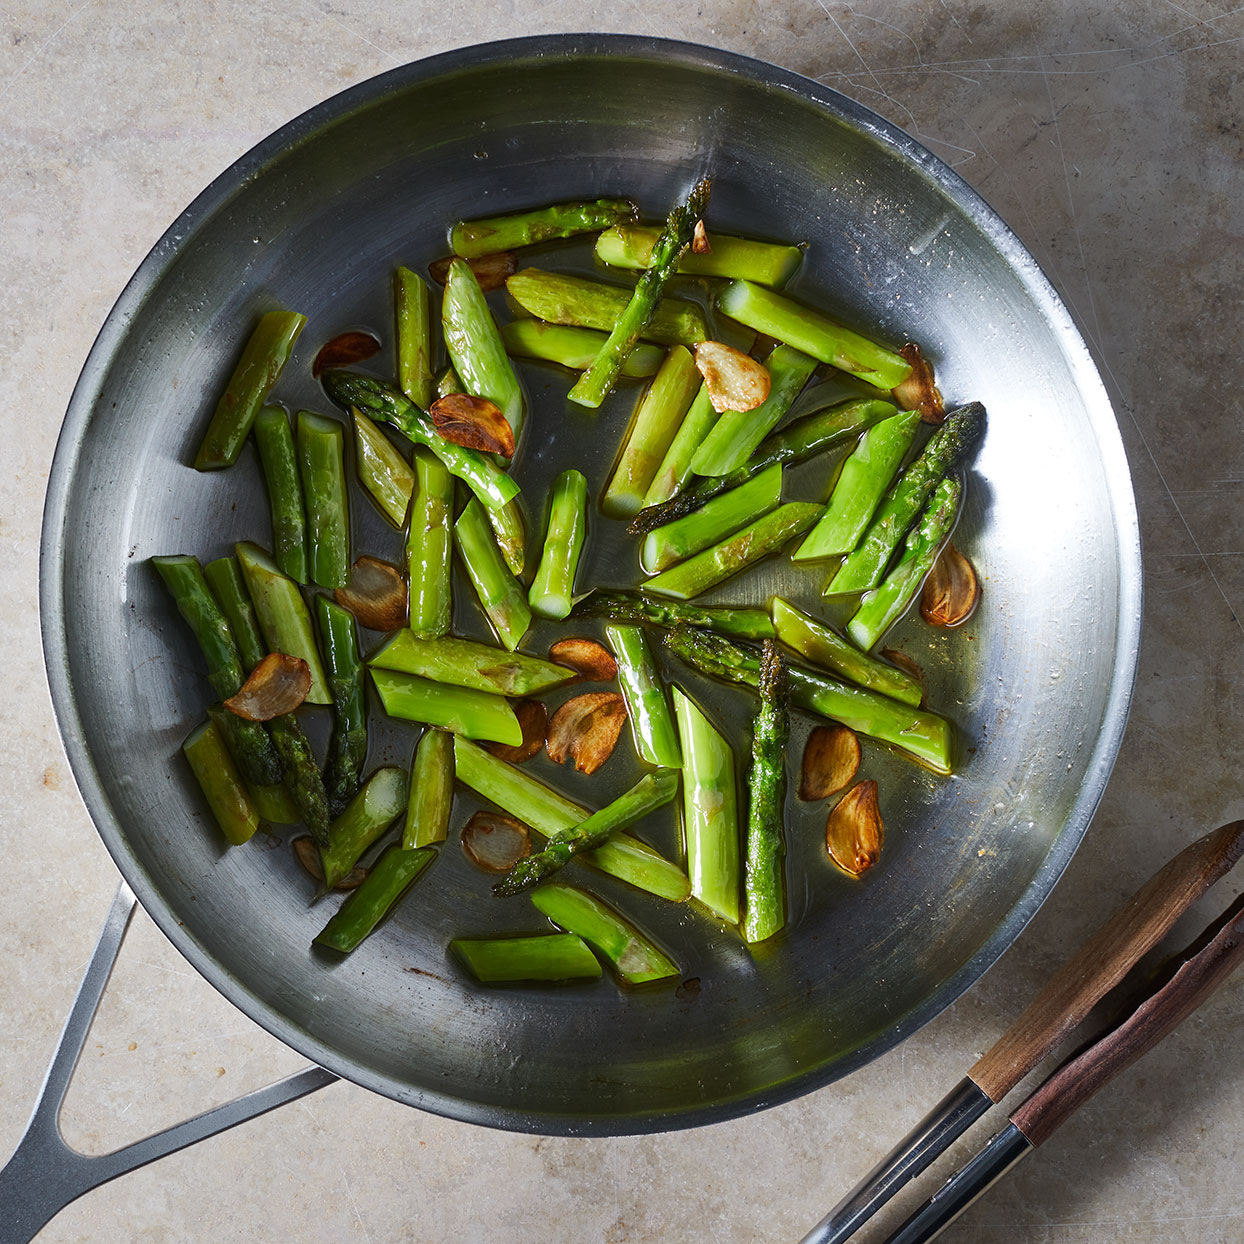 Sauteed-Asparagus-in-a-pan-whole